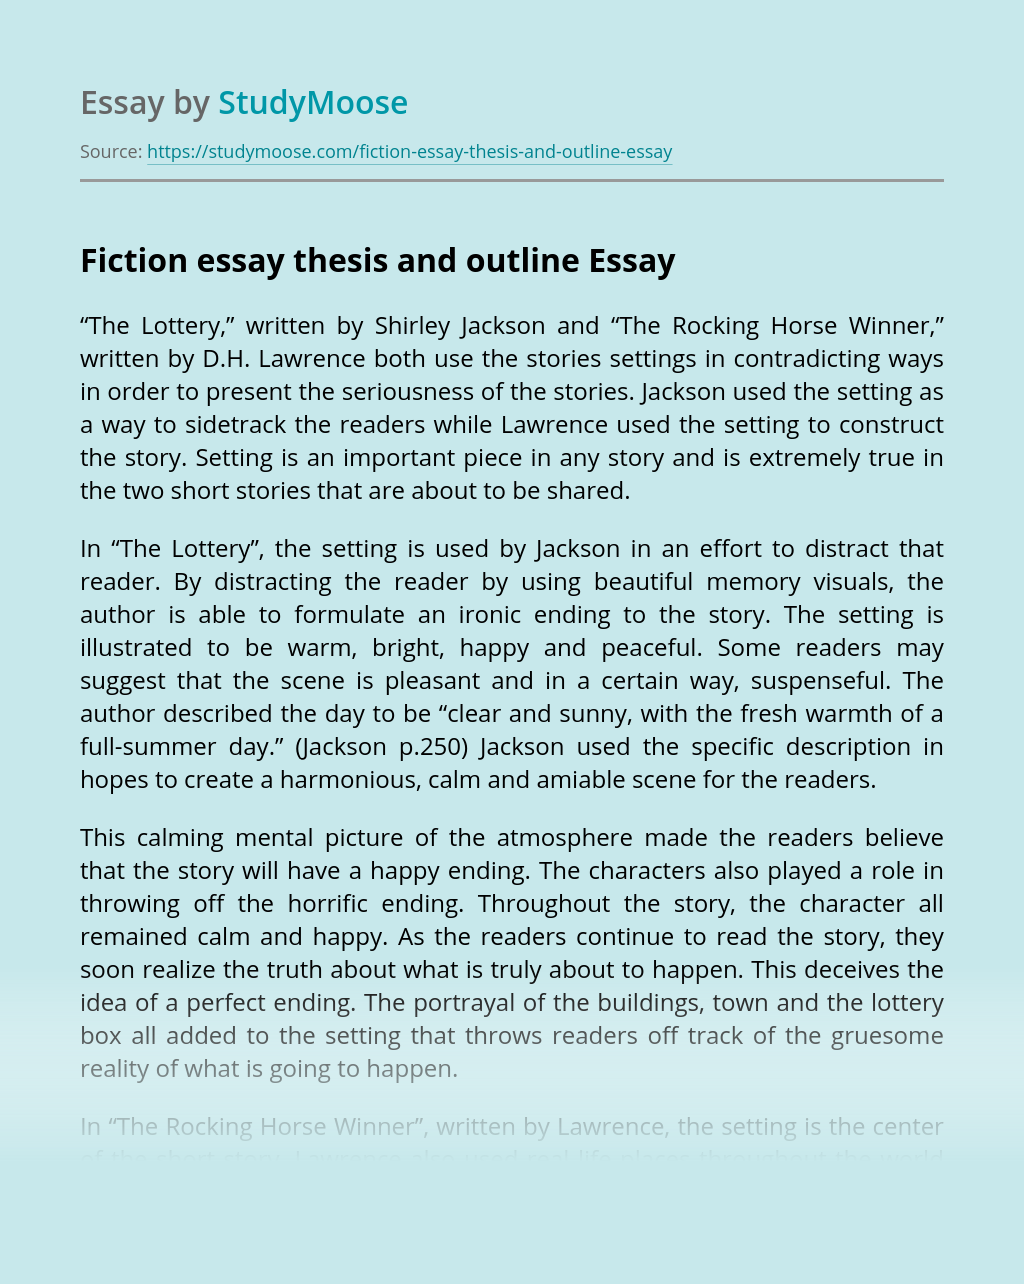 Fiction essay thesis and outline